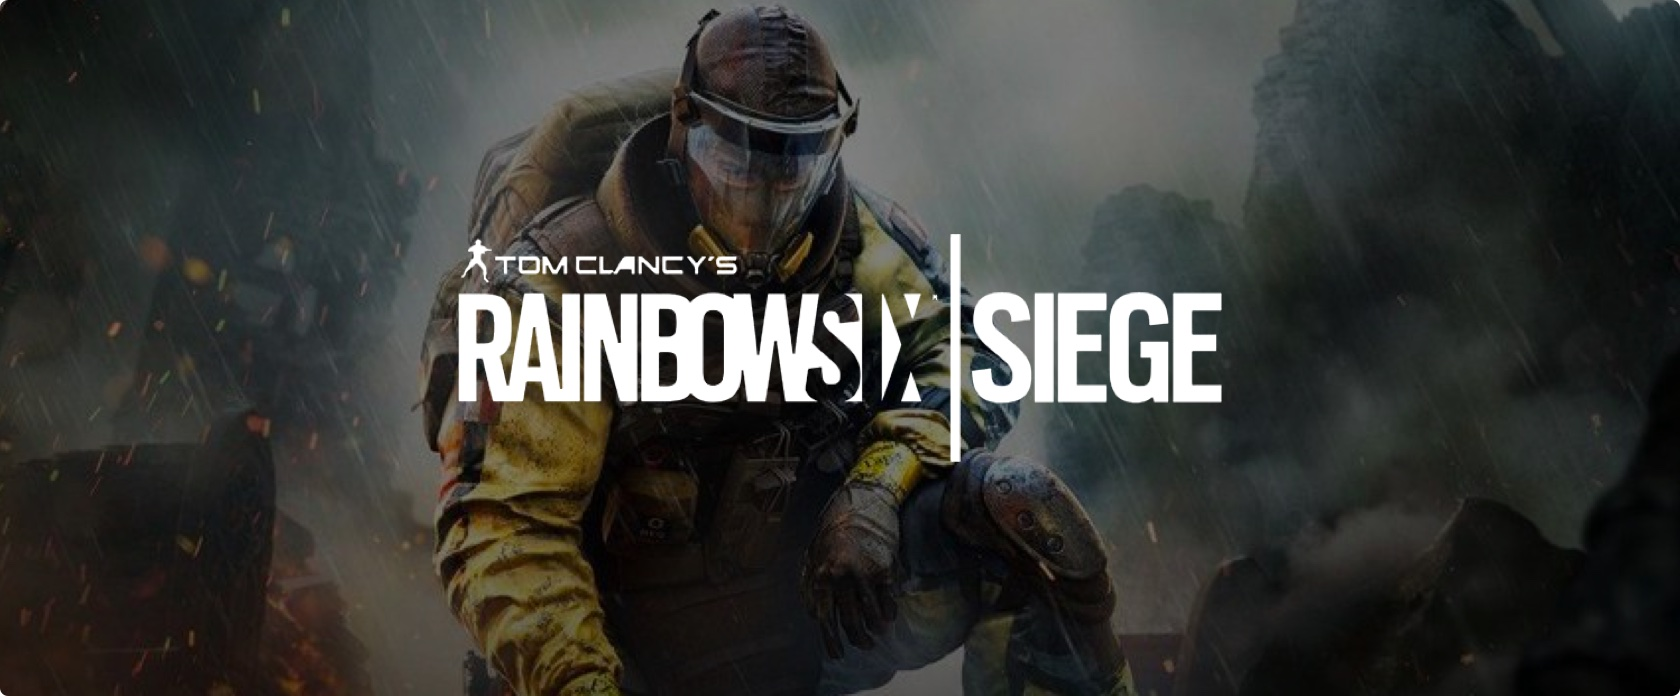 Rainbow Six Siege promotion image